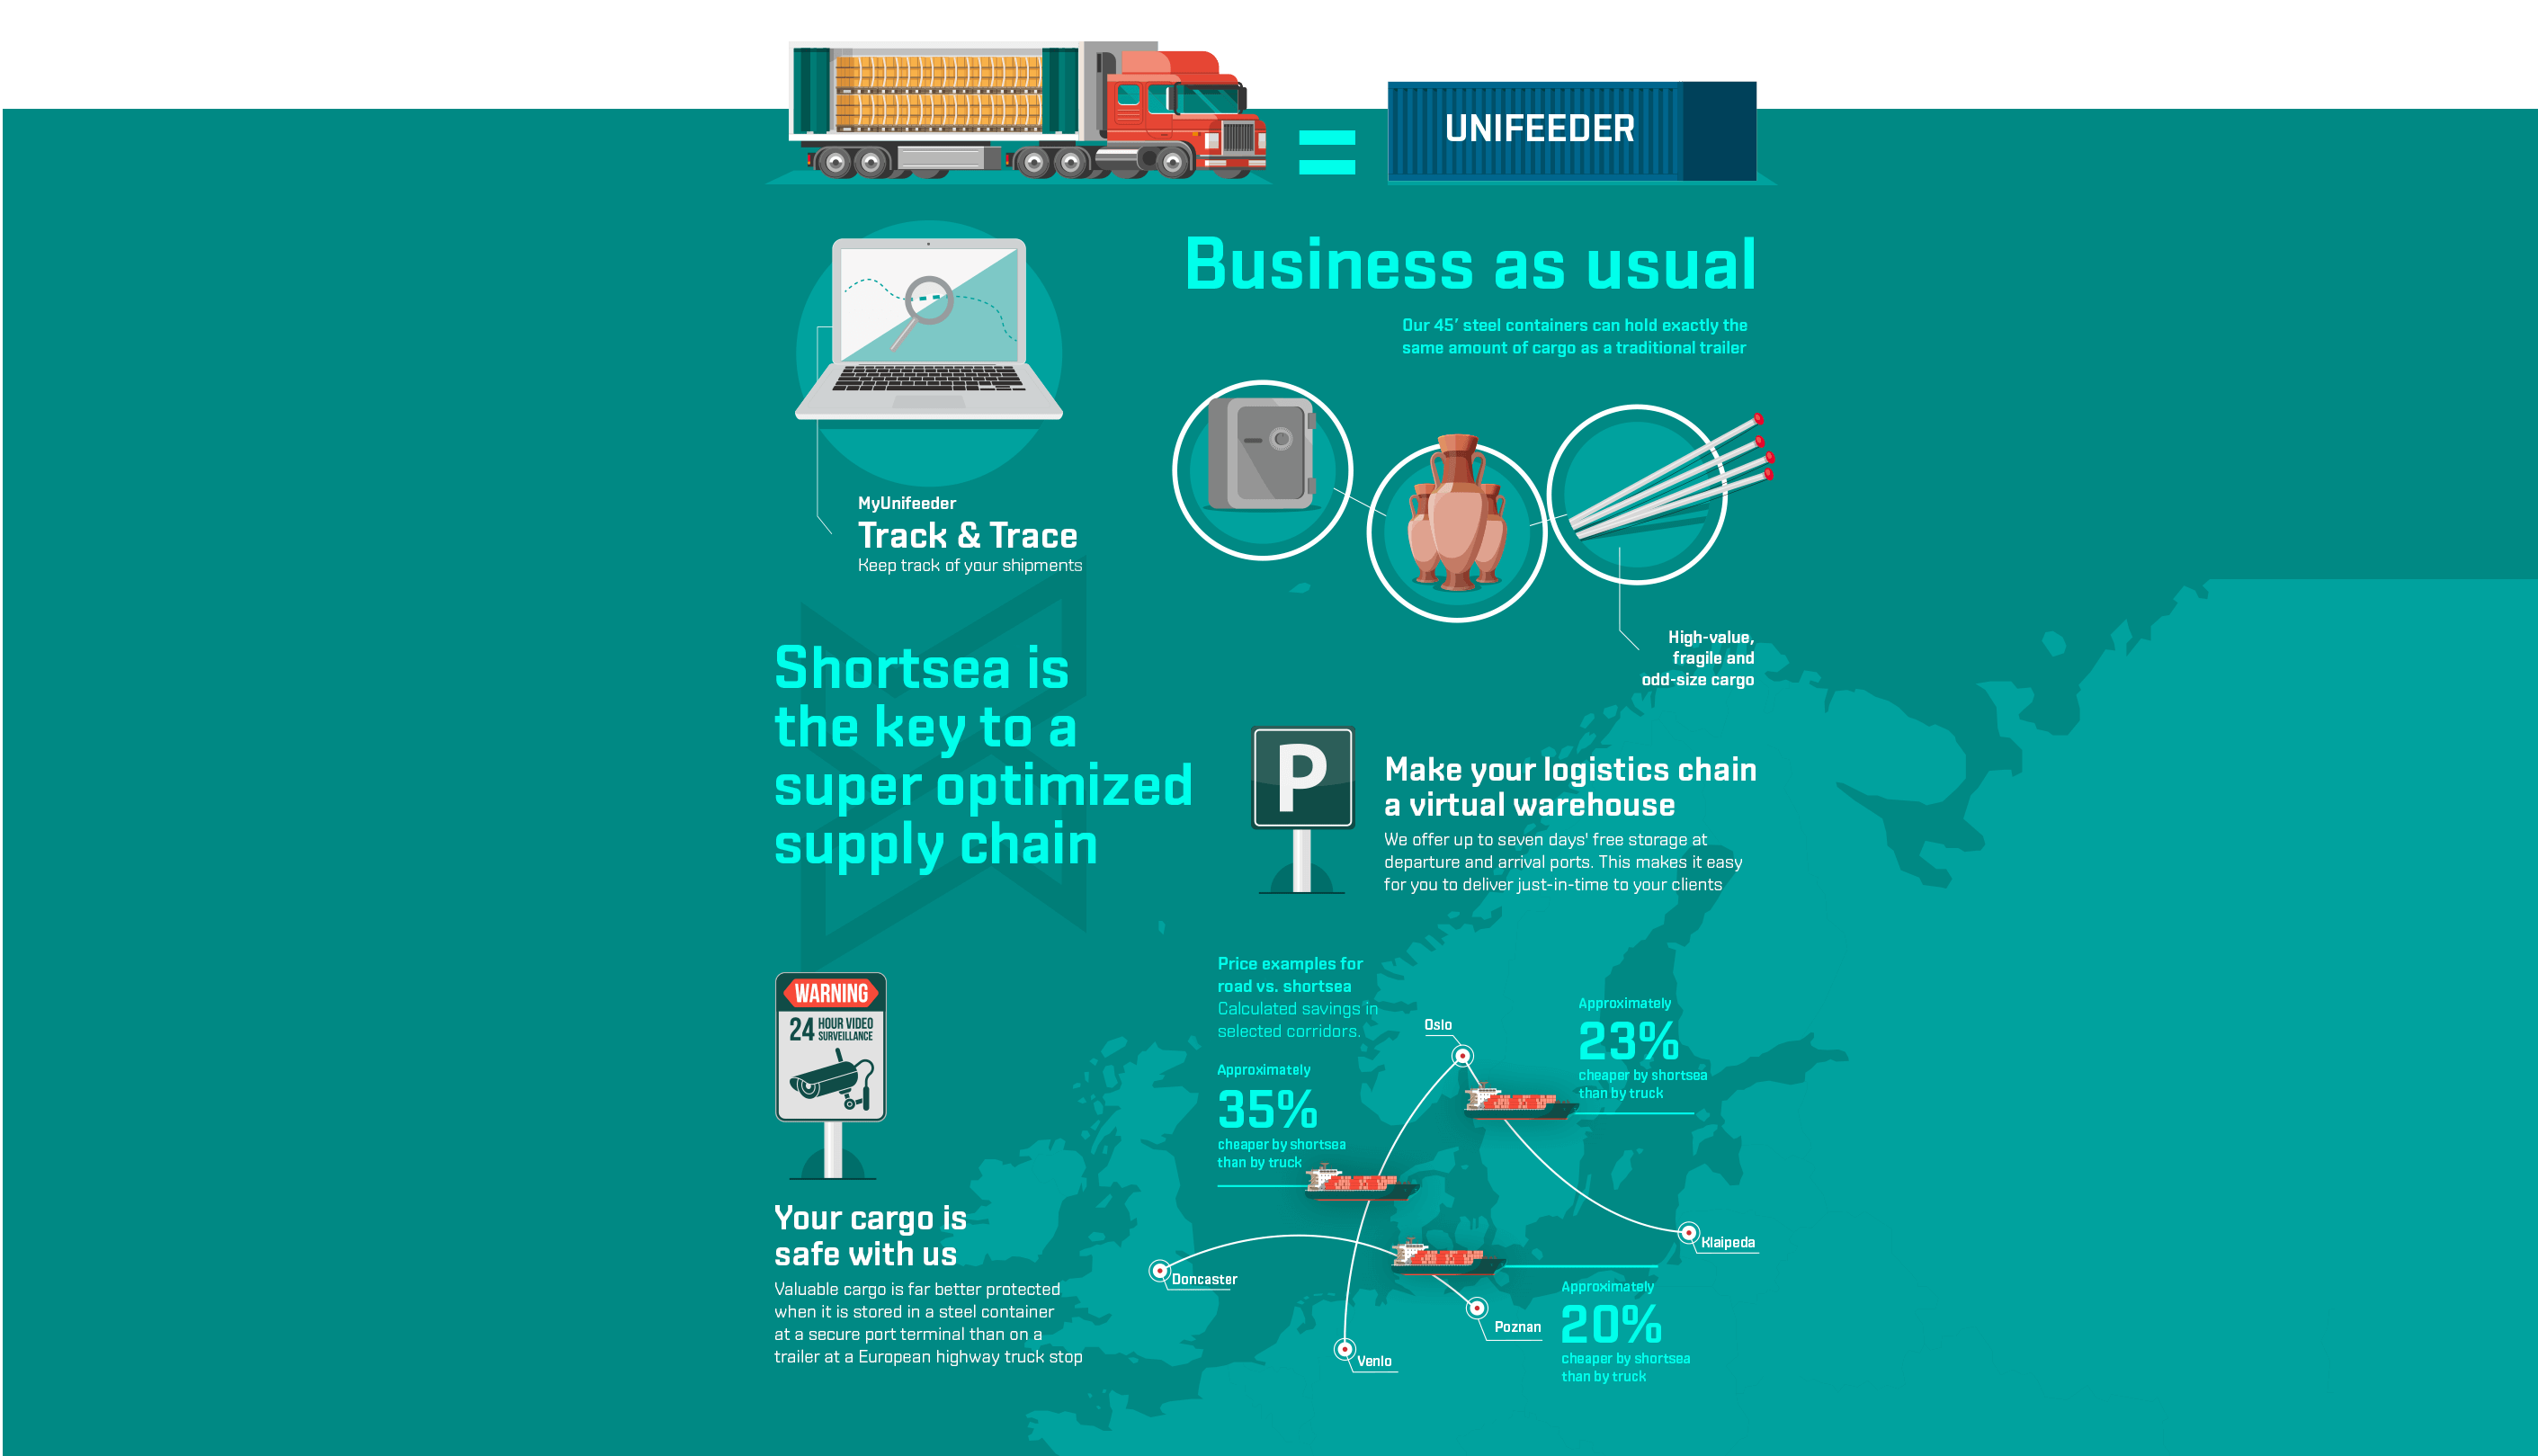 Shortsea is the key to a sustainable supply chain